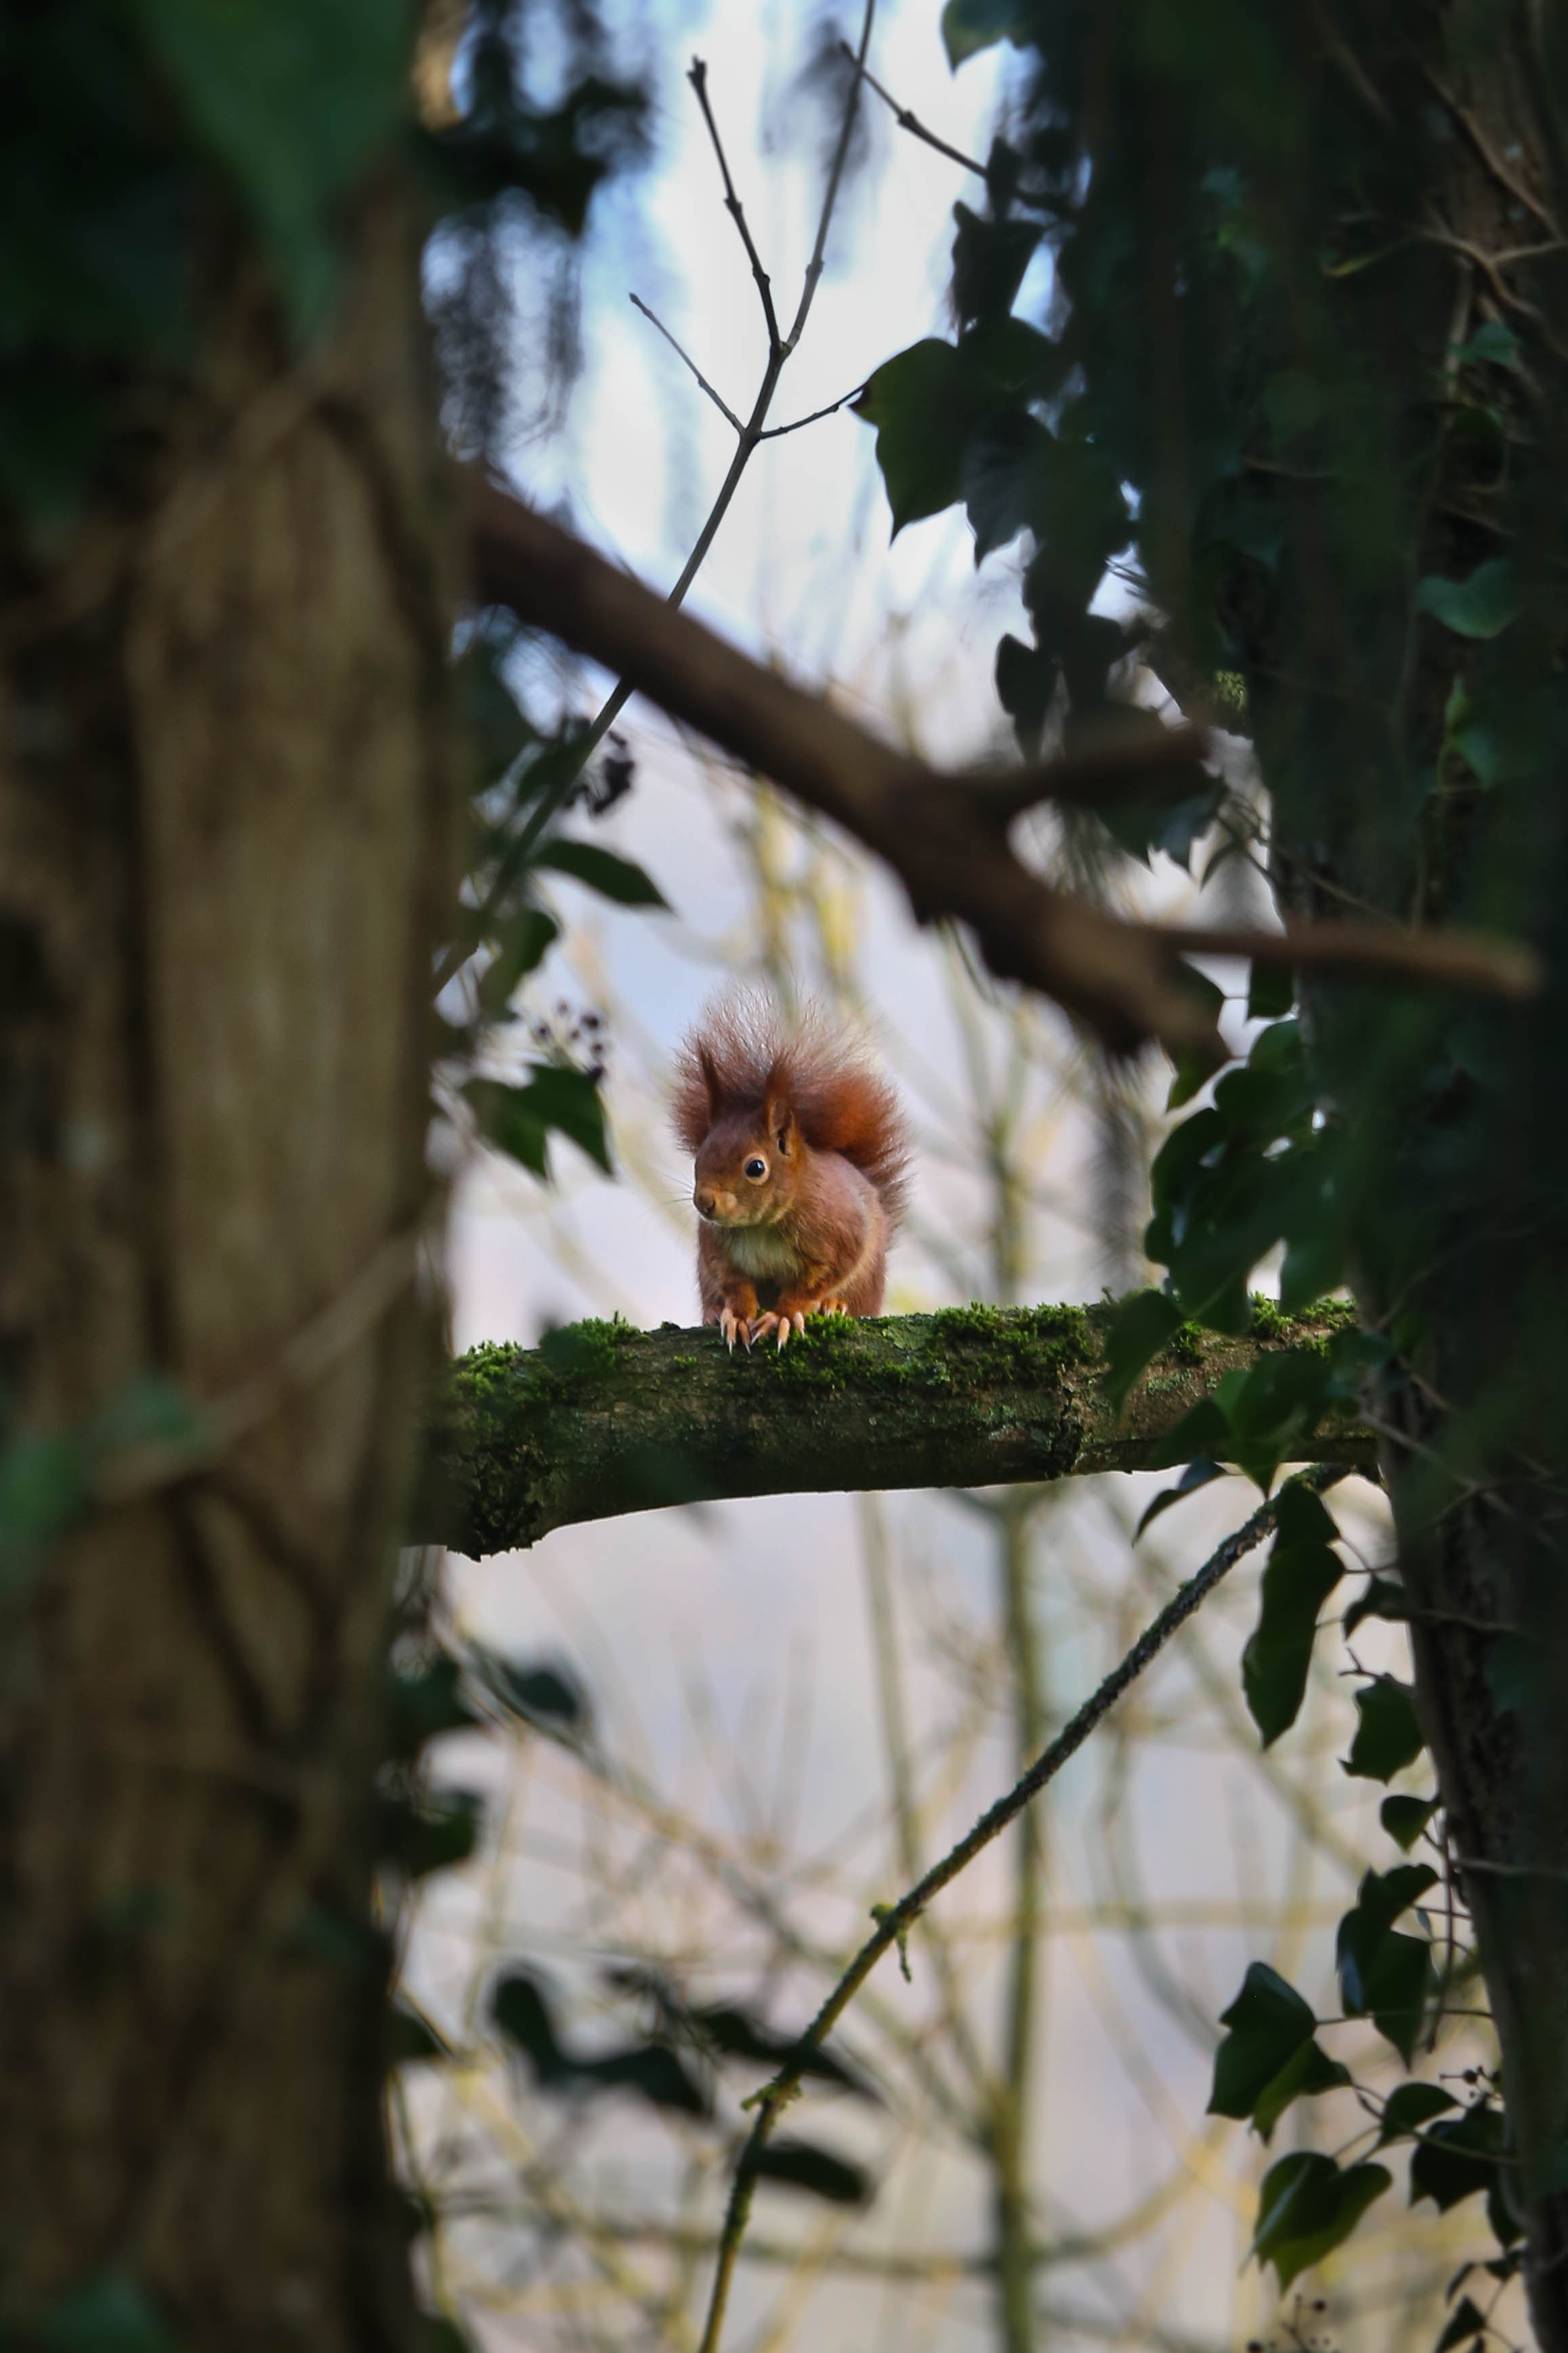 95810 download wallpaper Animals, Squirrel, Branches, Wildlife, Wood, Tree screensavers and pictures for free